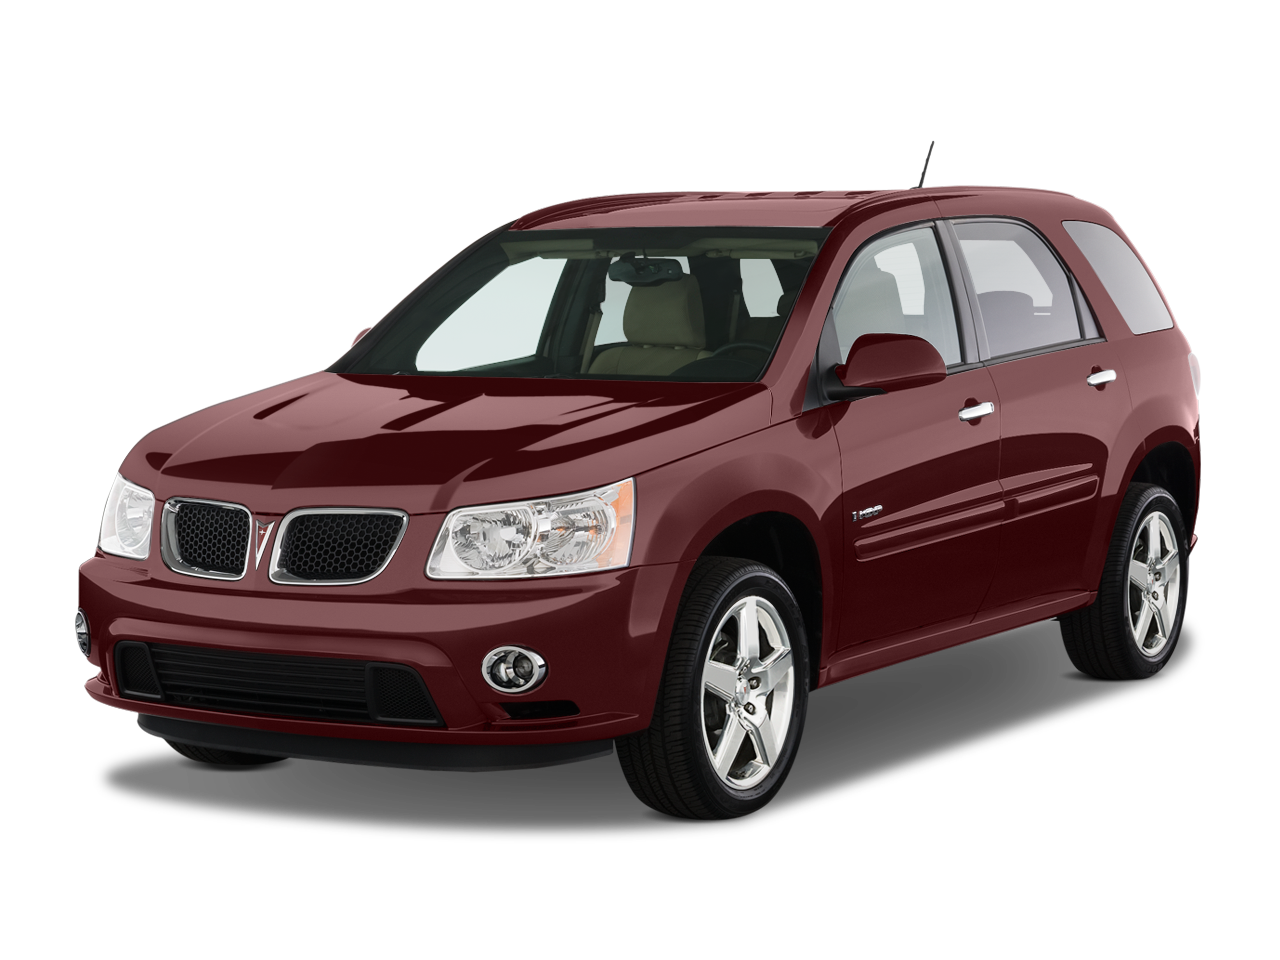 2008 Pontiac Torrent Gxp Latest News Features And Auto